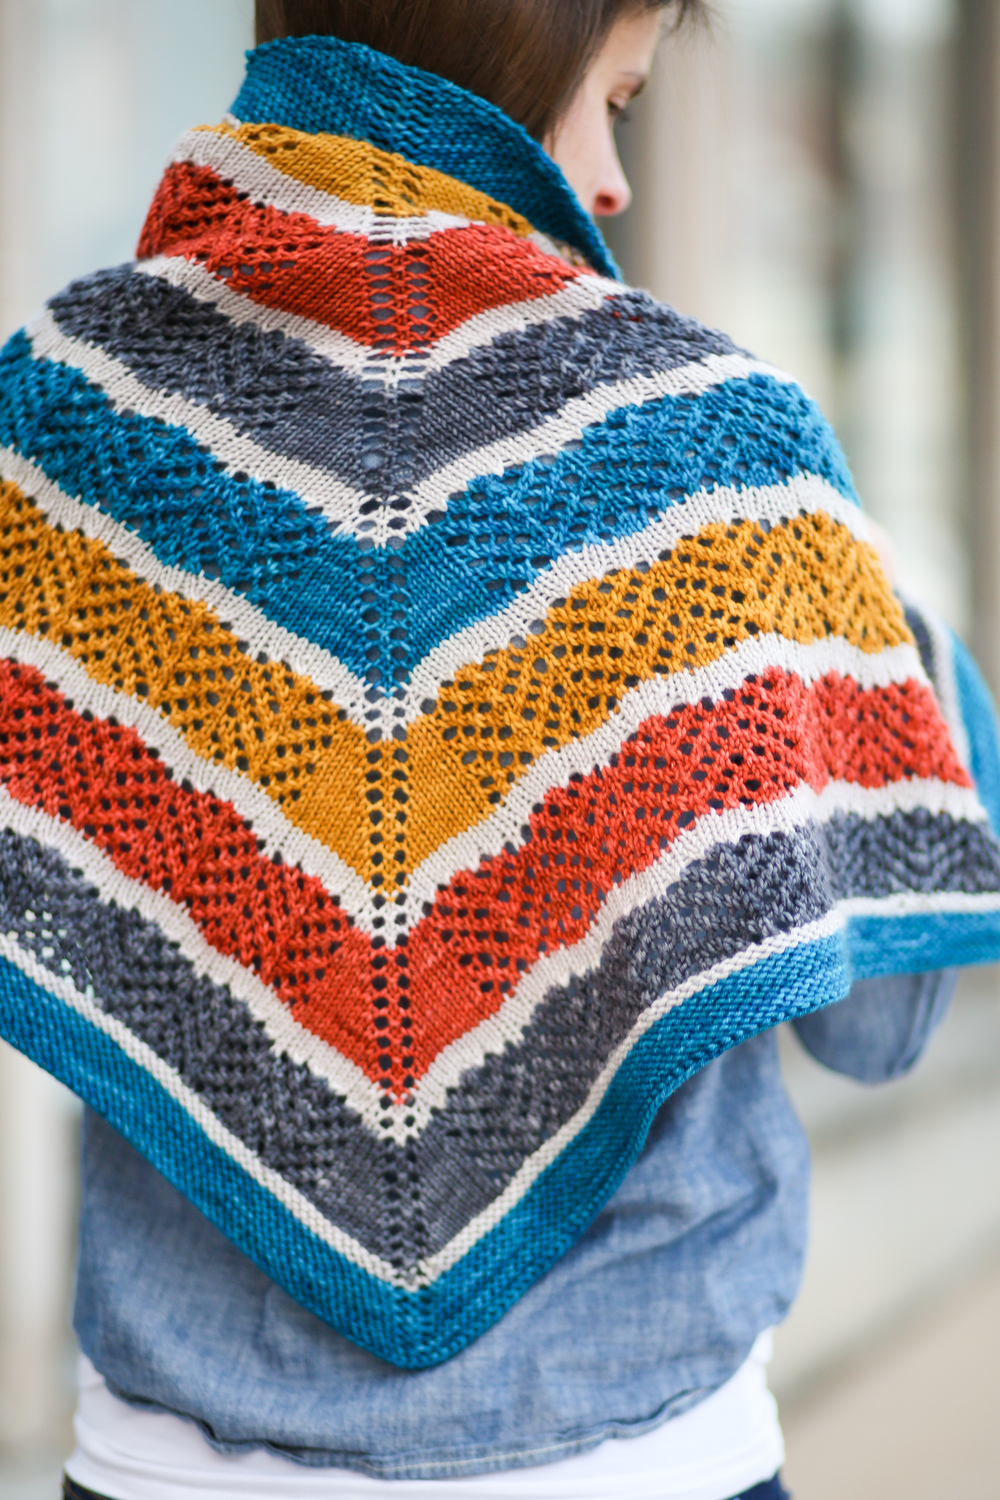 Lorelai Shawl by Very Shannon